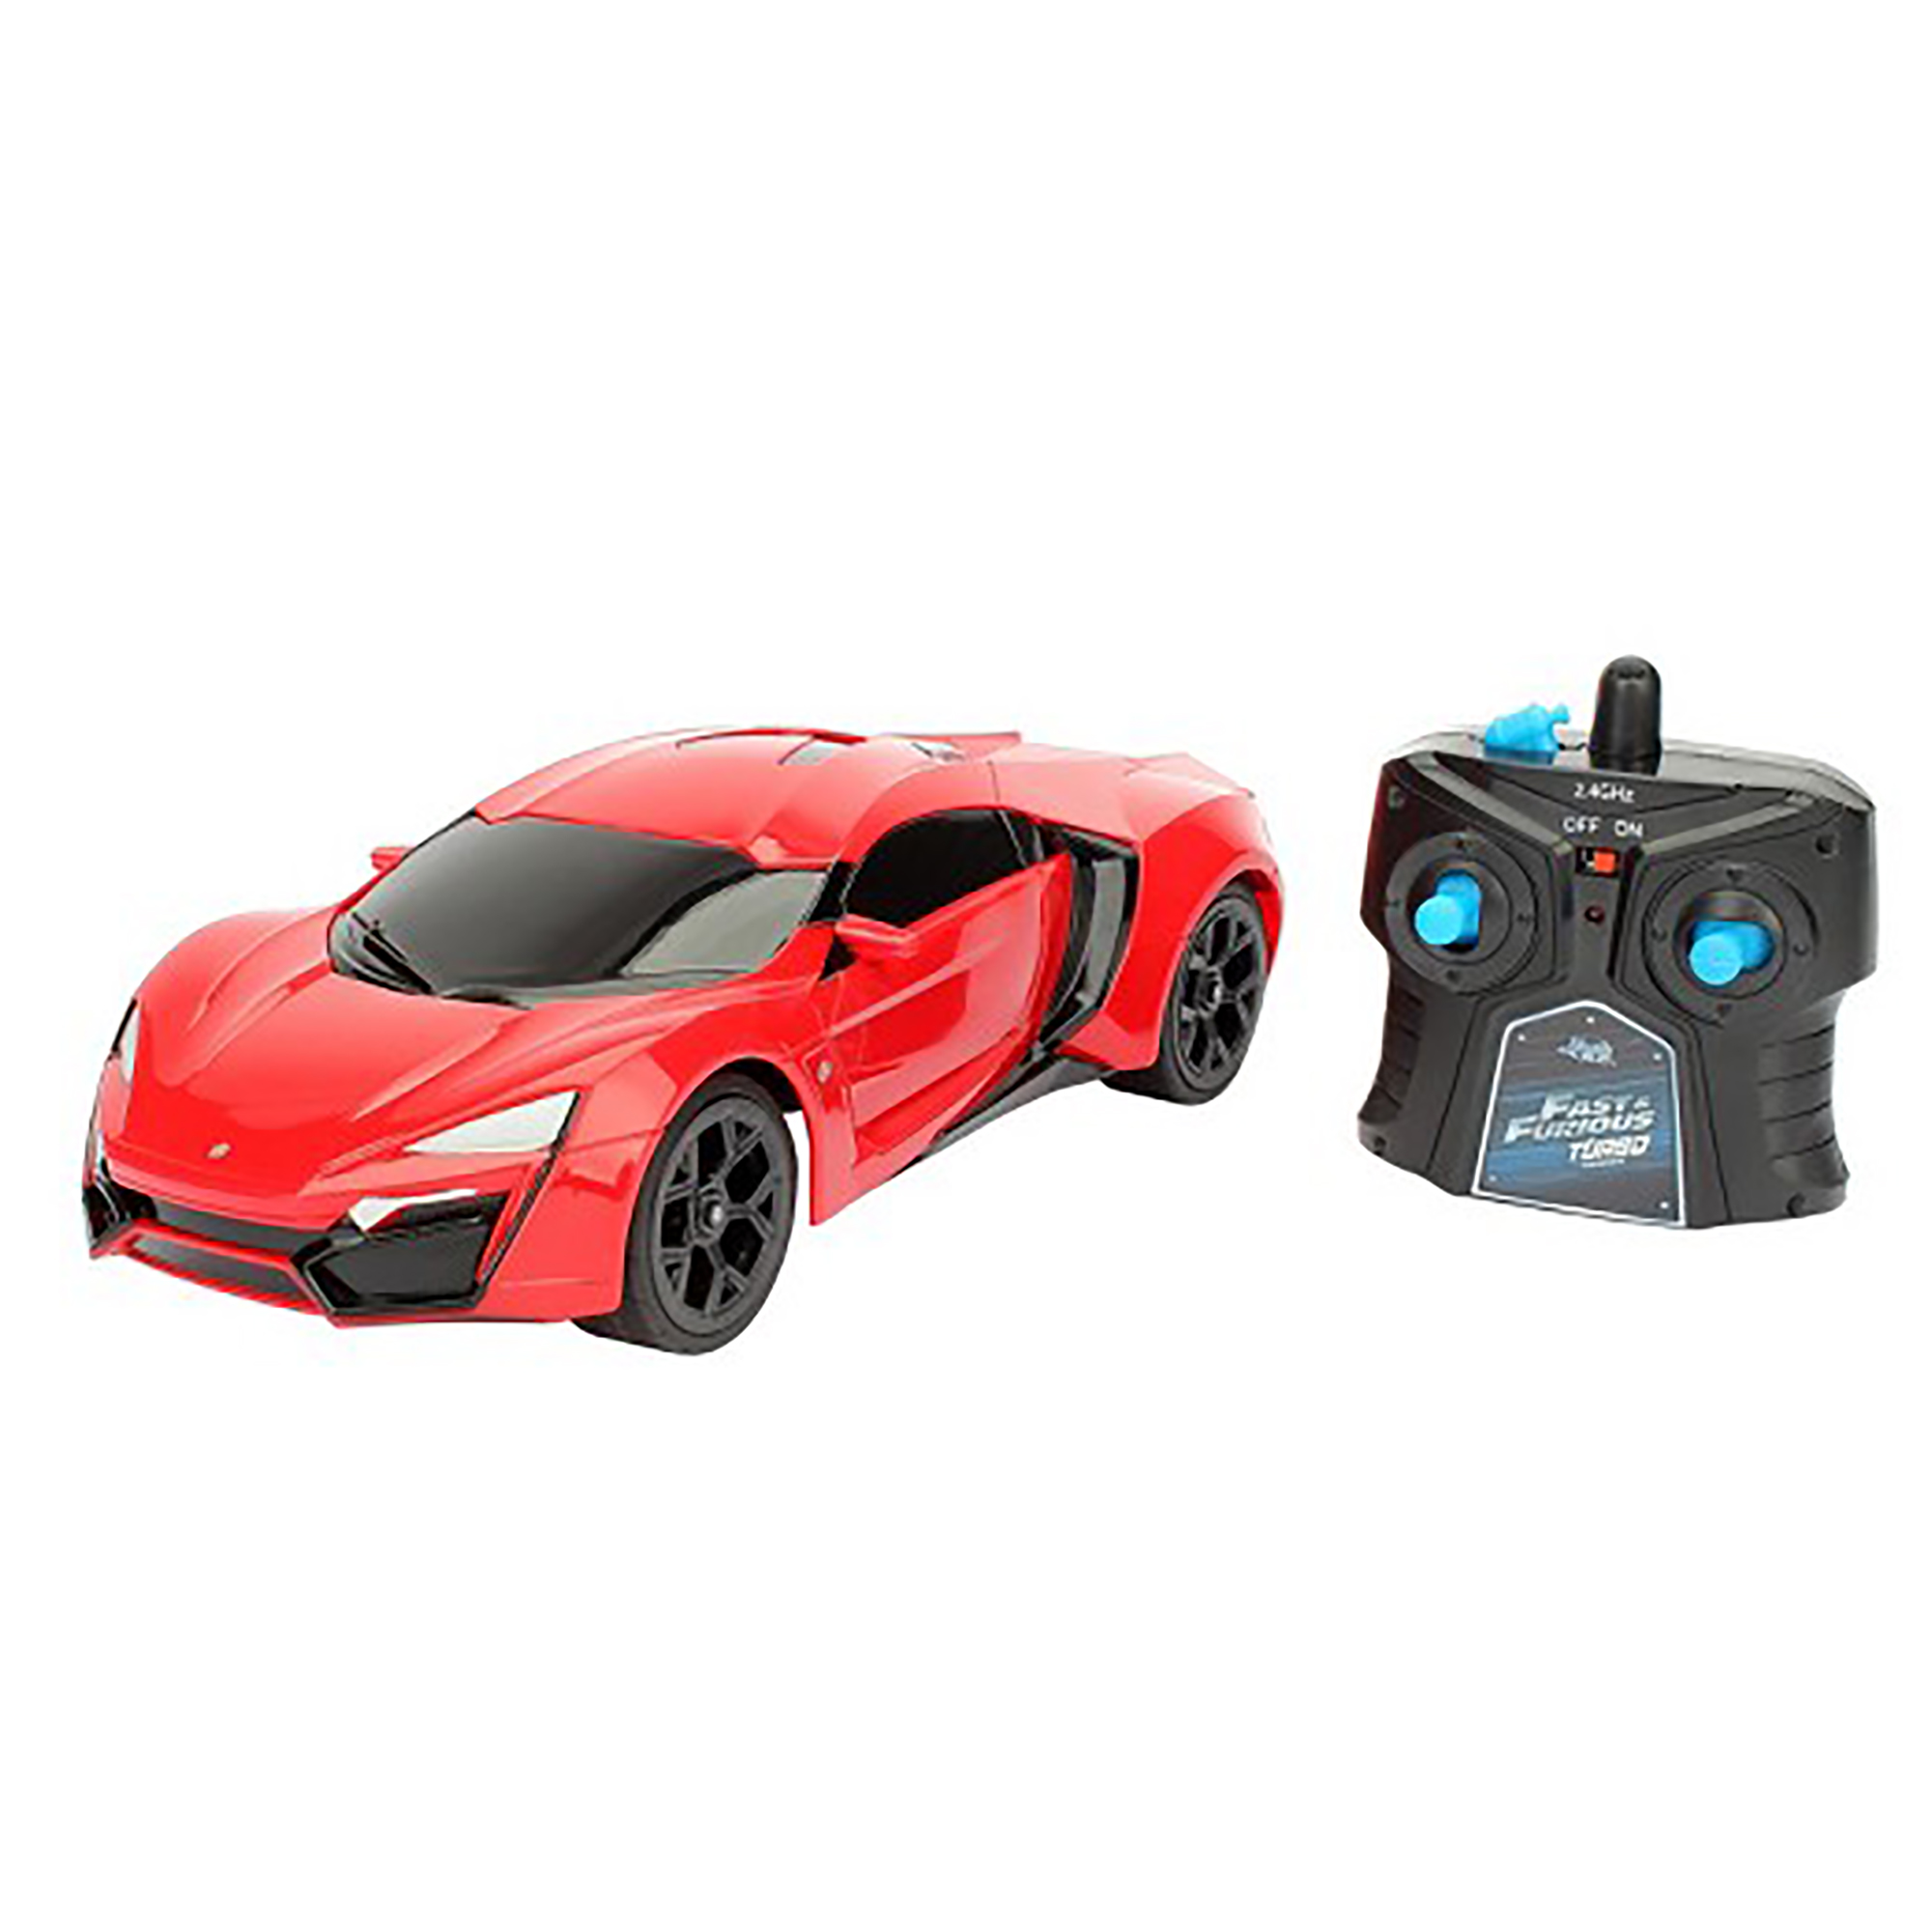 Jada Toys Fast & Furious 1:16 RC, Lykan Hypersport by Jada